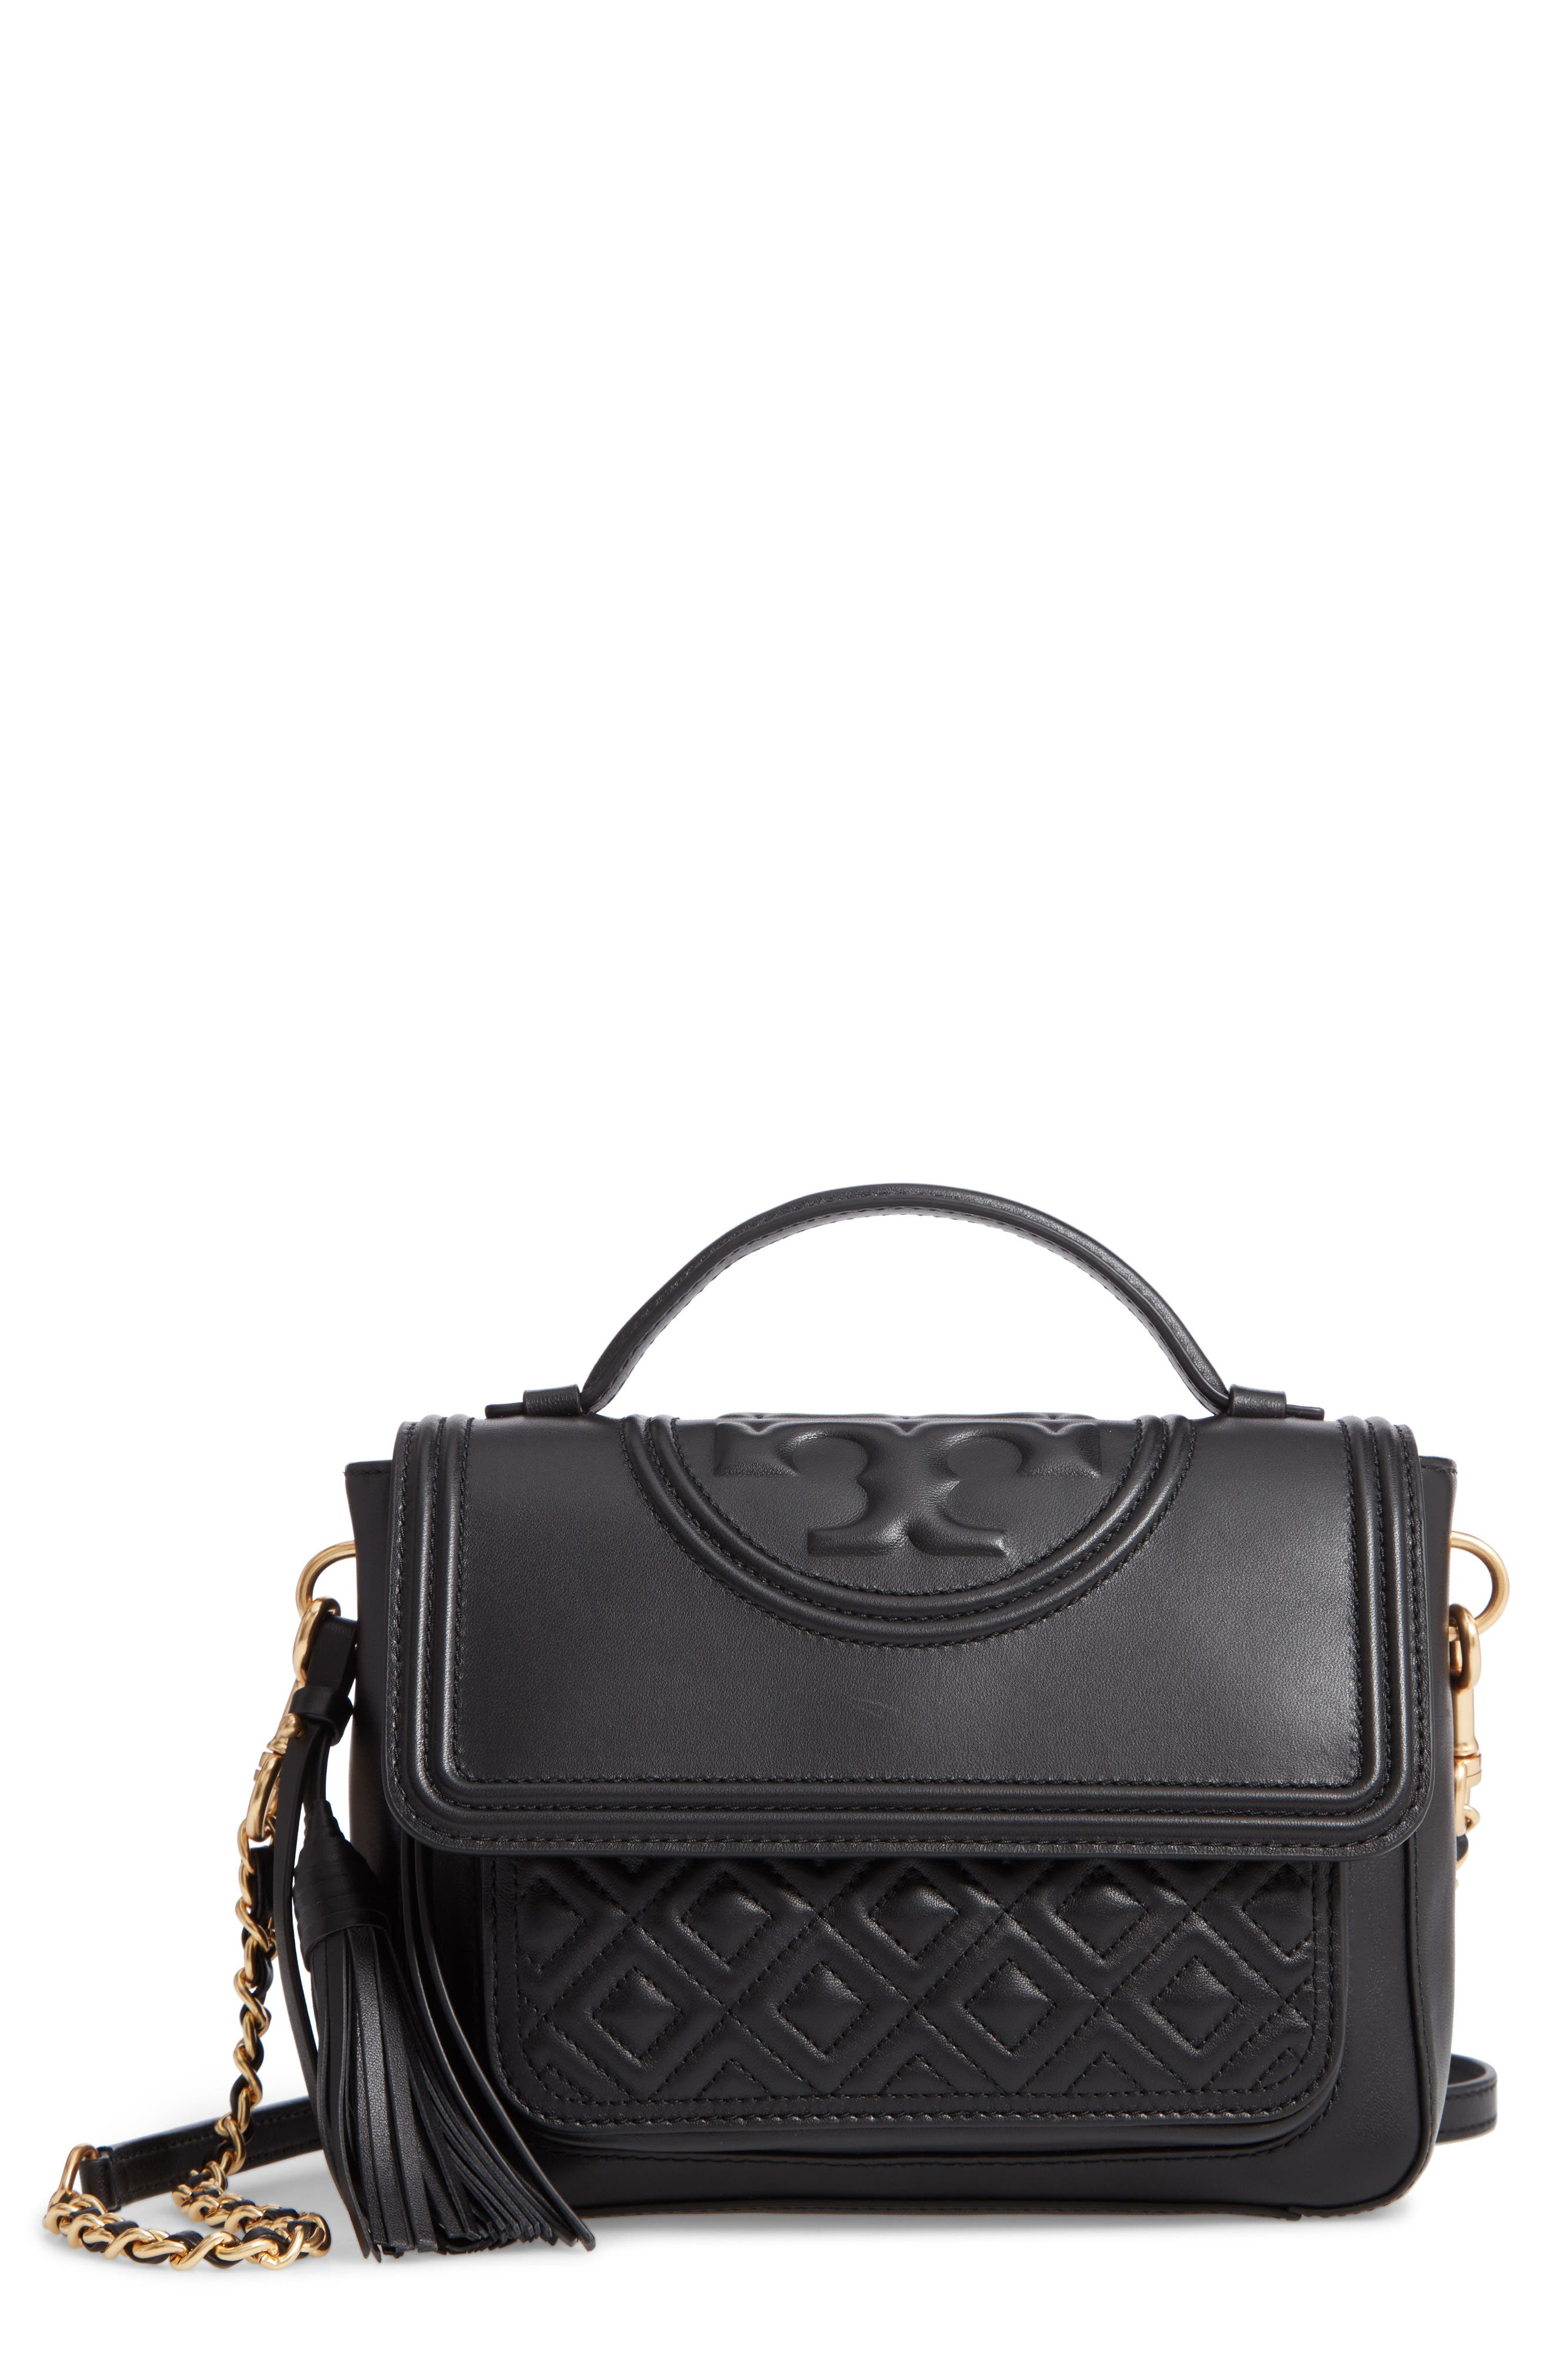 TORY BURCH Fleming Quilted Leather Top Handle Satchel, Main, color, BLACK